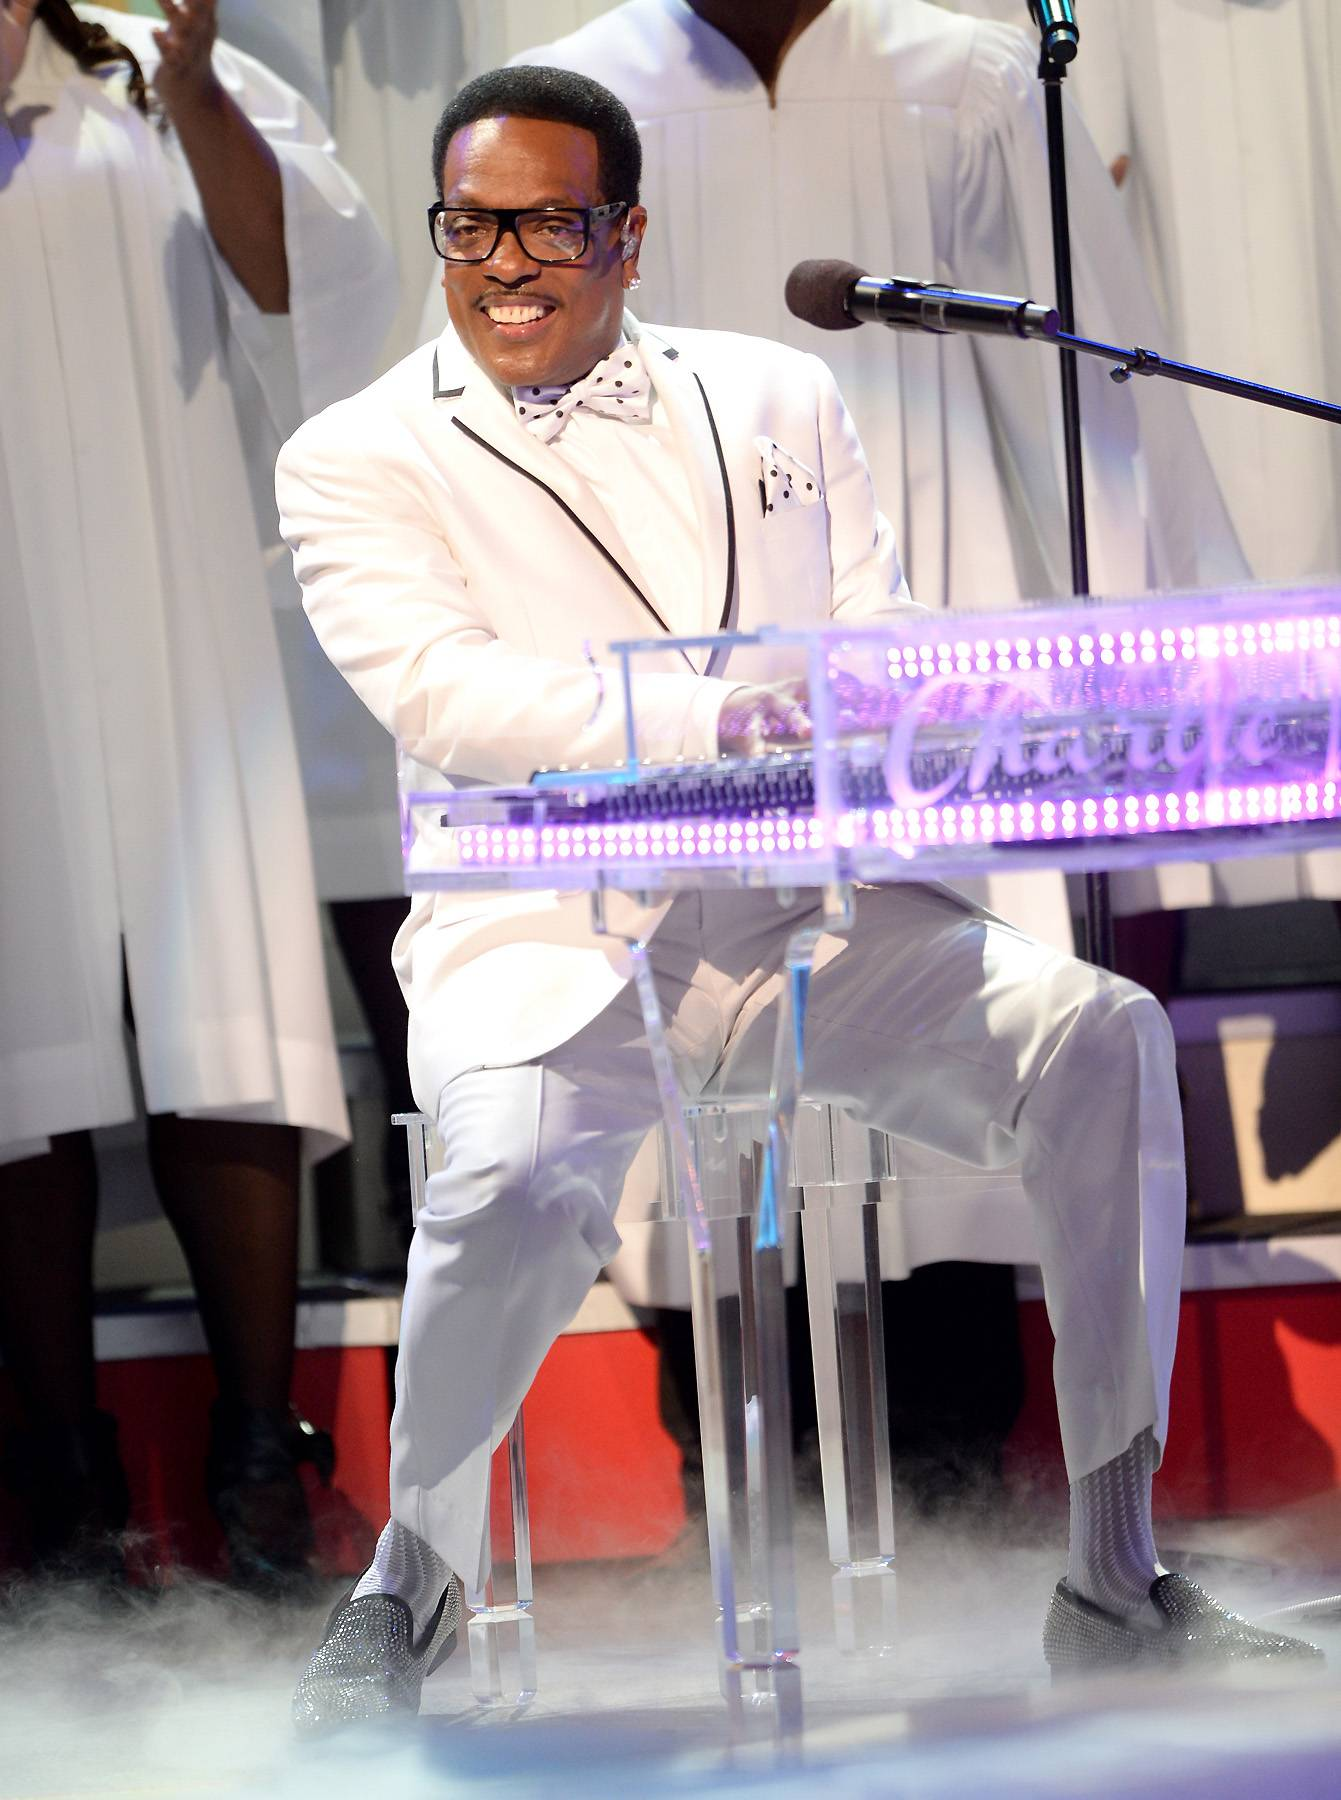 Electrifying - Equipped with his illuminated piano, Charlie Wilson showed his musicianship while giving a musical testimony.(Photo: Jason Kempin/Getty Images for BET)